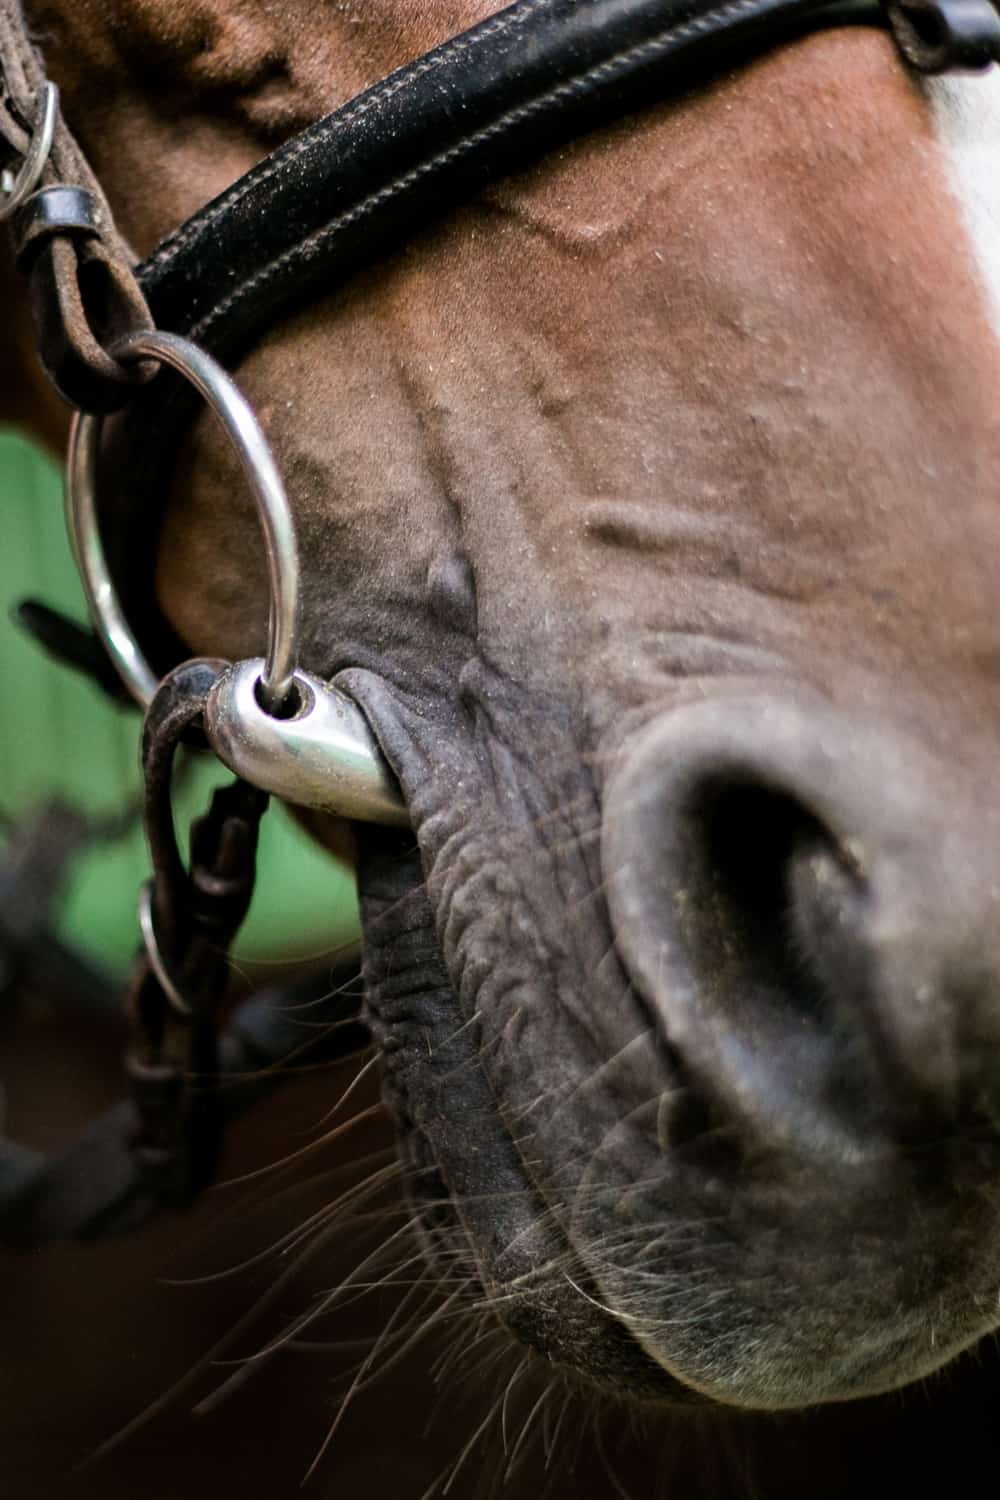 Adjust the horse's gear